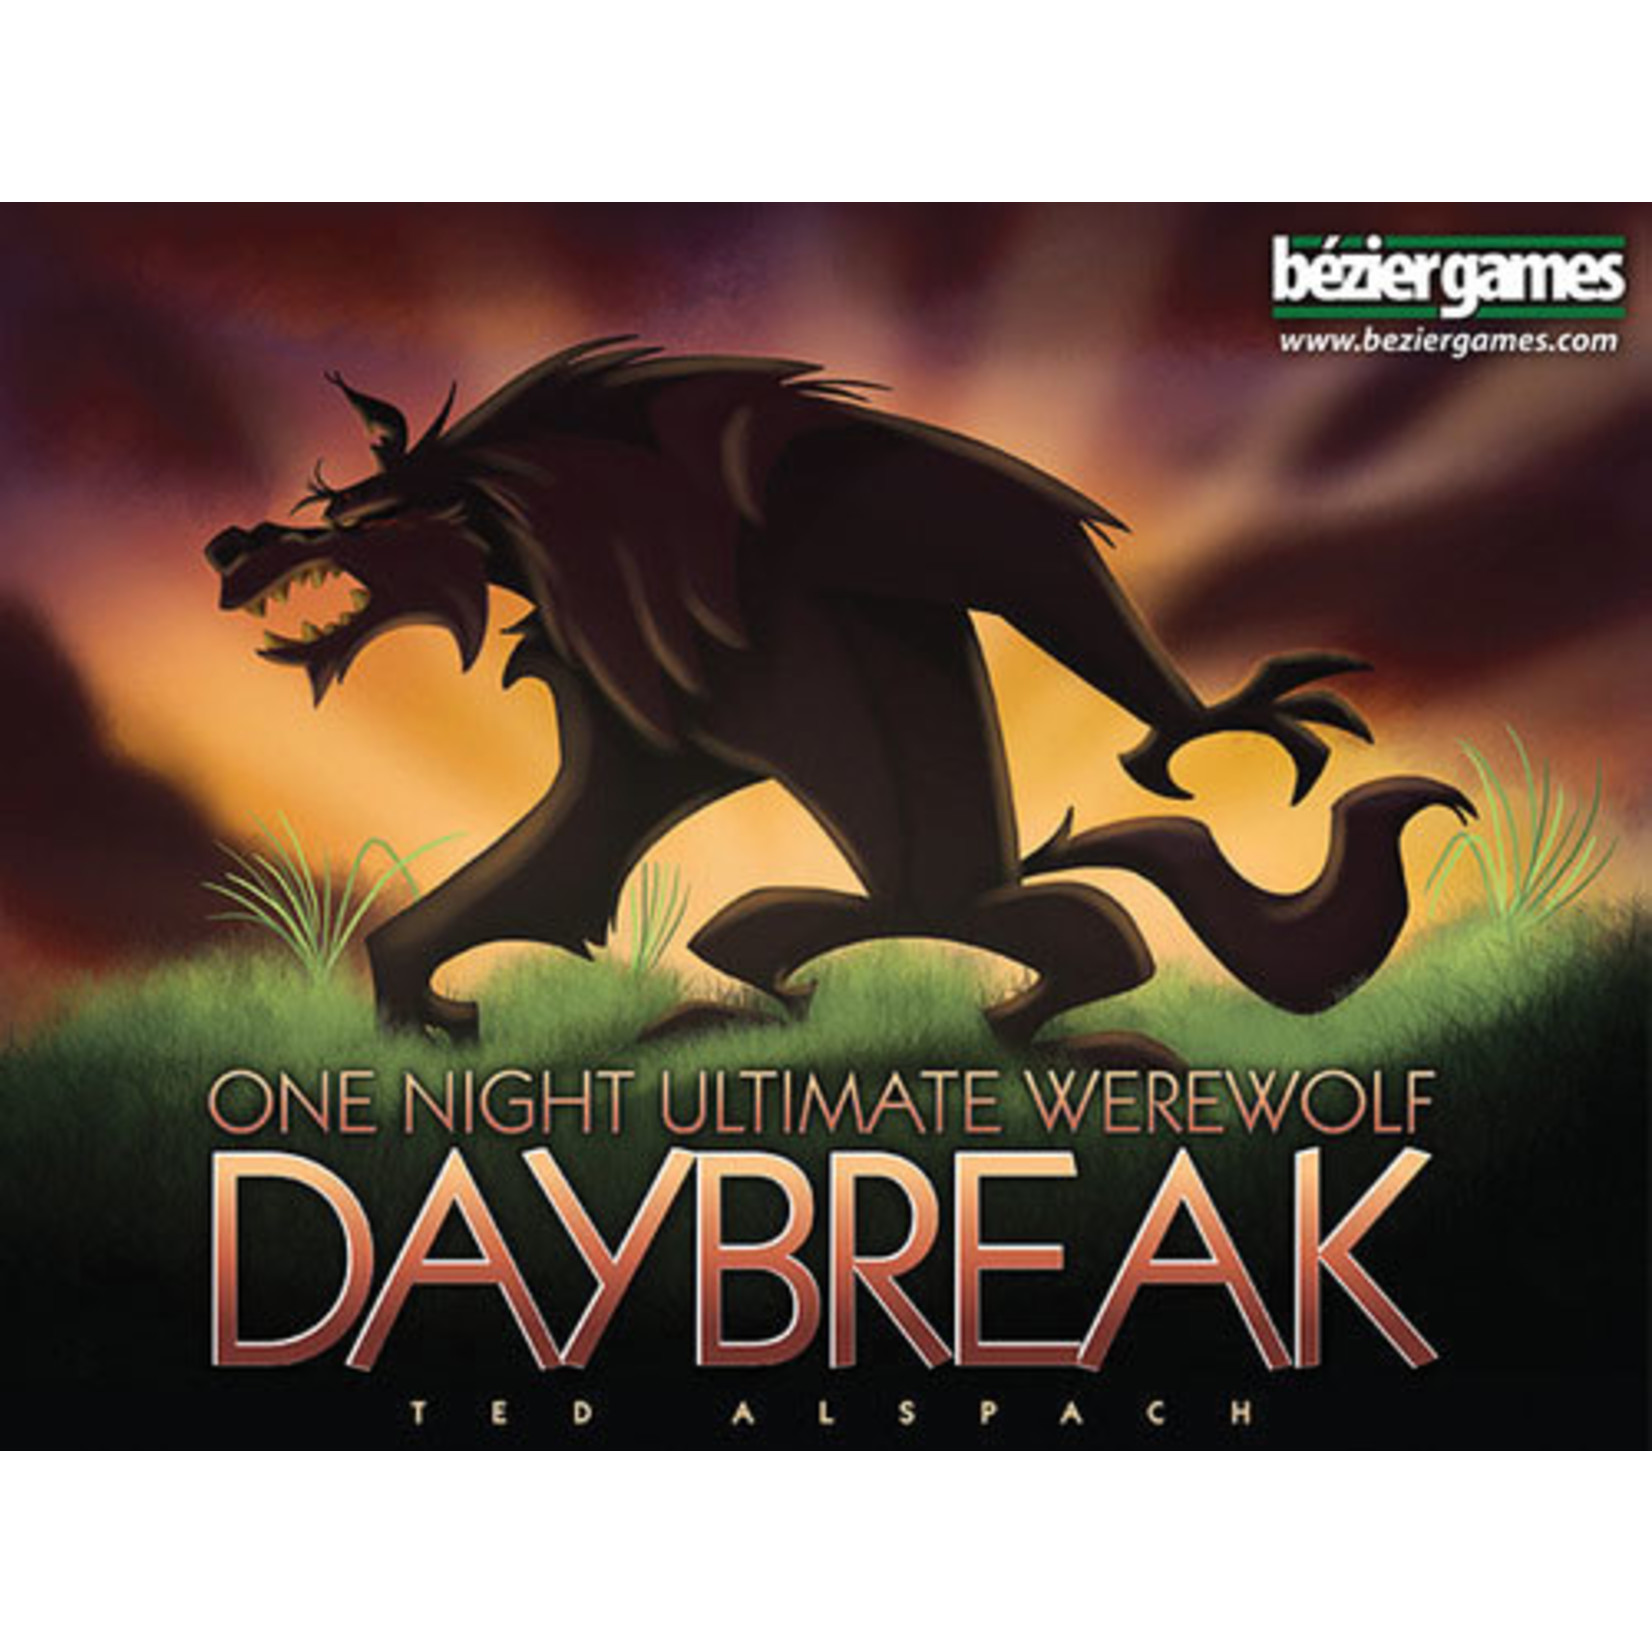 One Night: Ultimate Werewolf - Daybreak (stand alone or expansion)